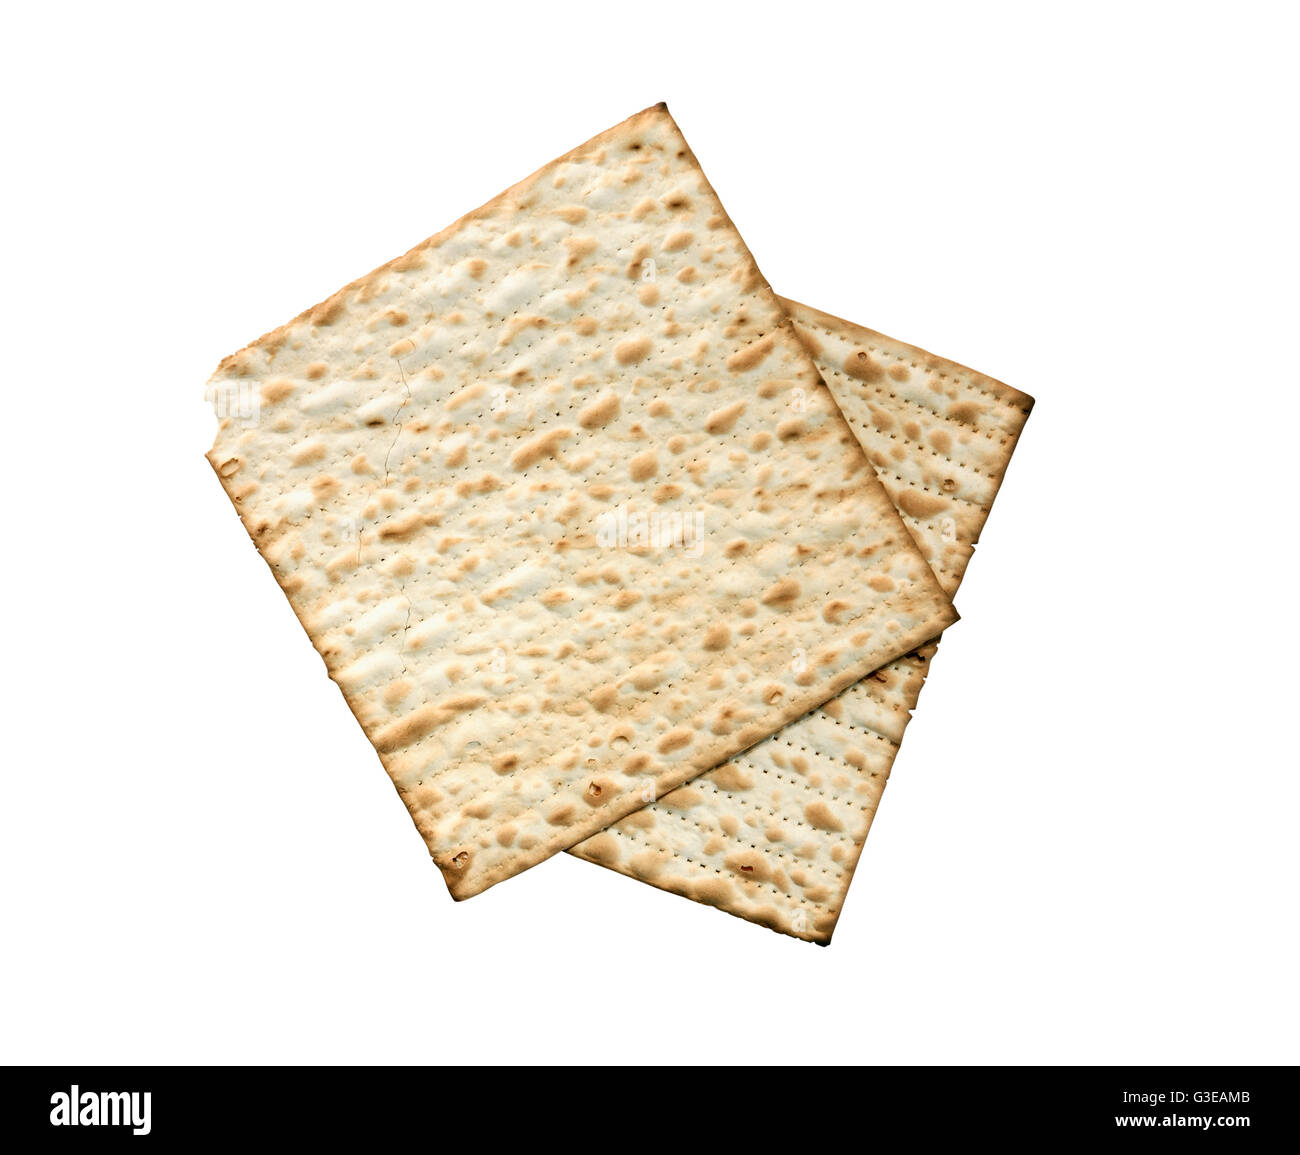 Seder concept. Matzo isolated on white background with clipping path - Stock Image